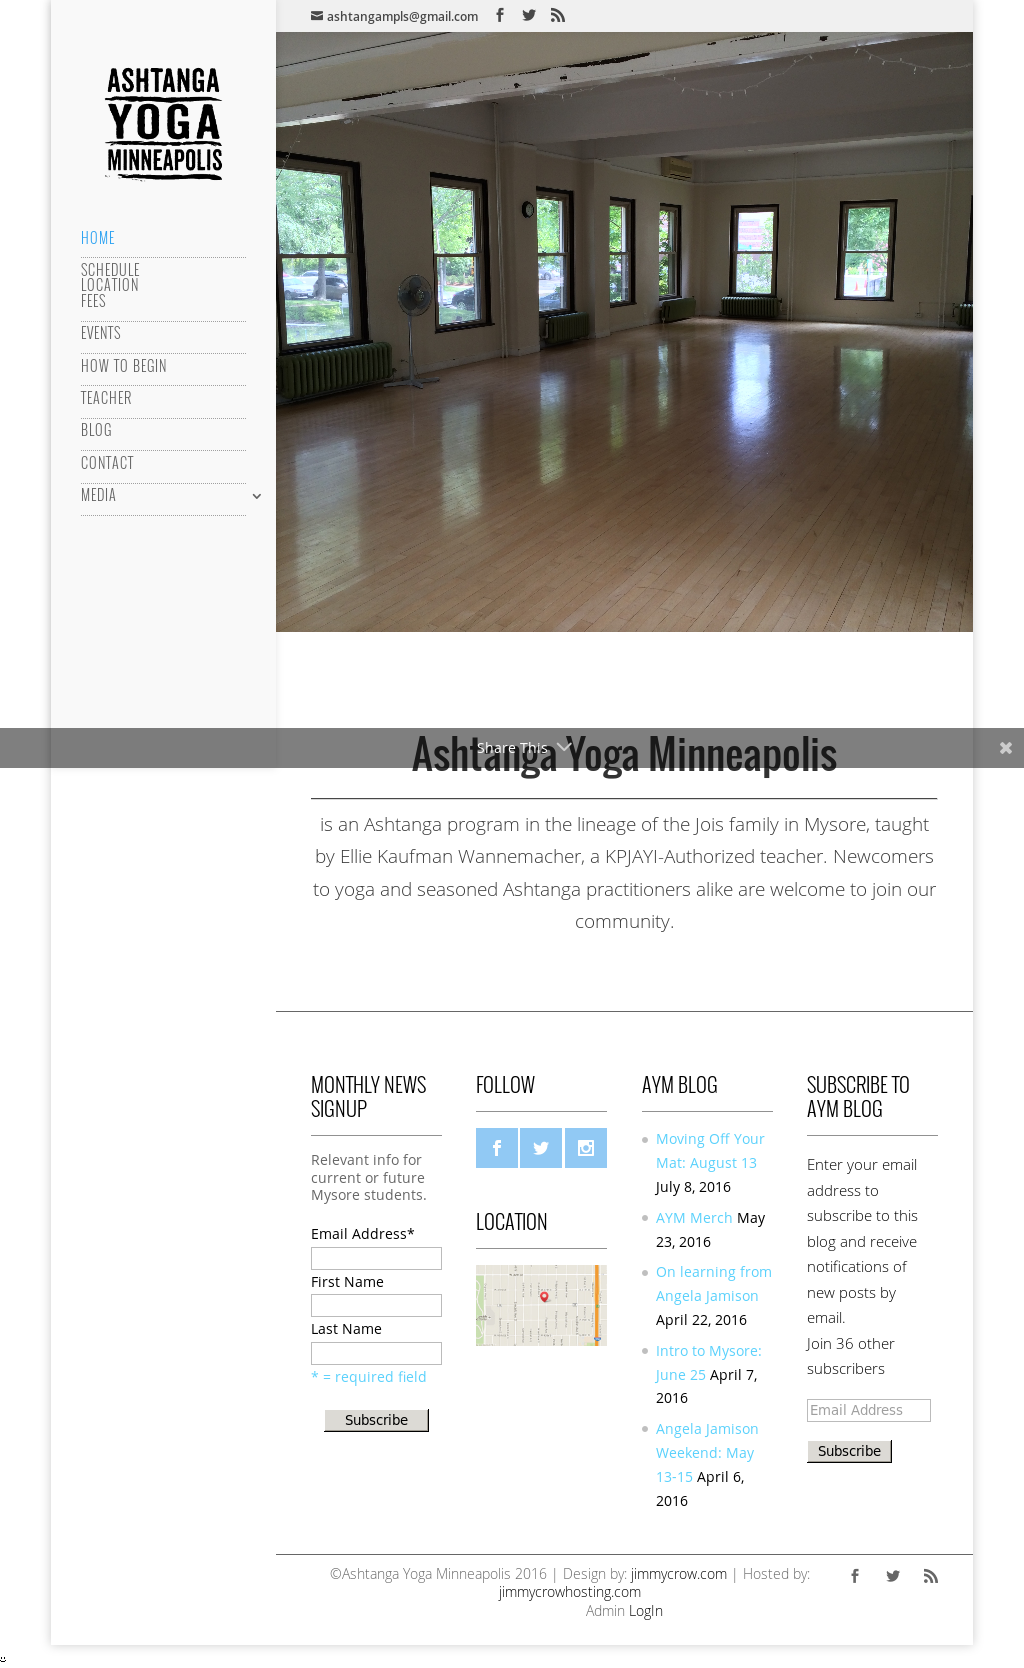 Ashtanga Yoga Minneapolis Competitors, Revenue and Employees